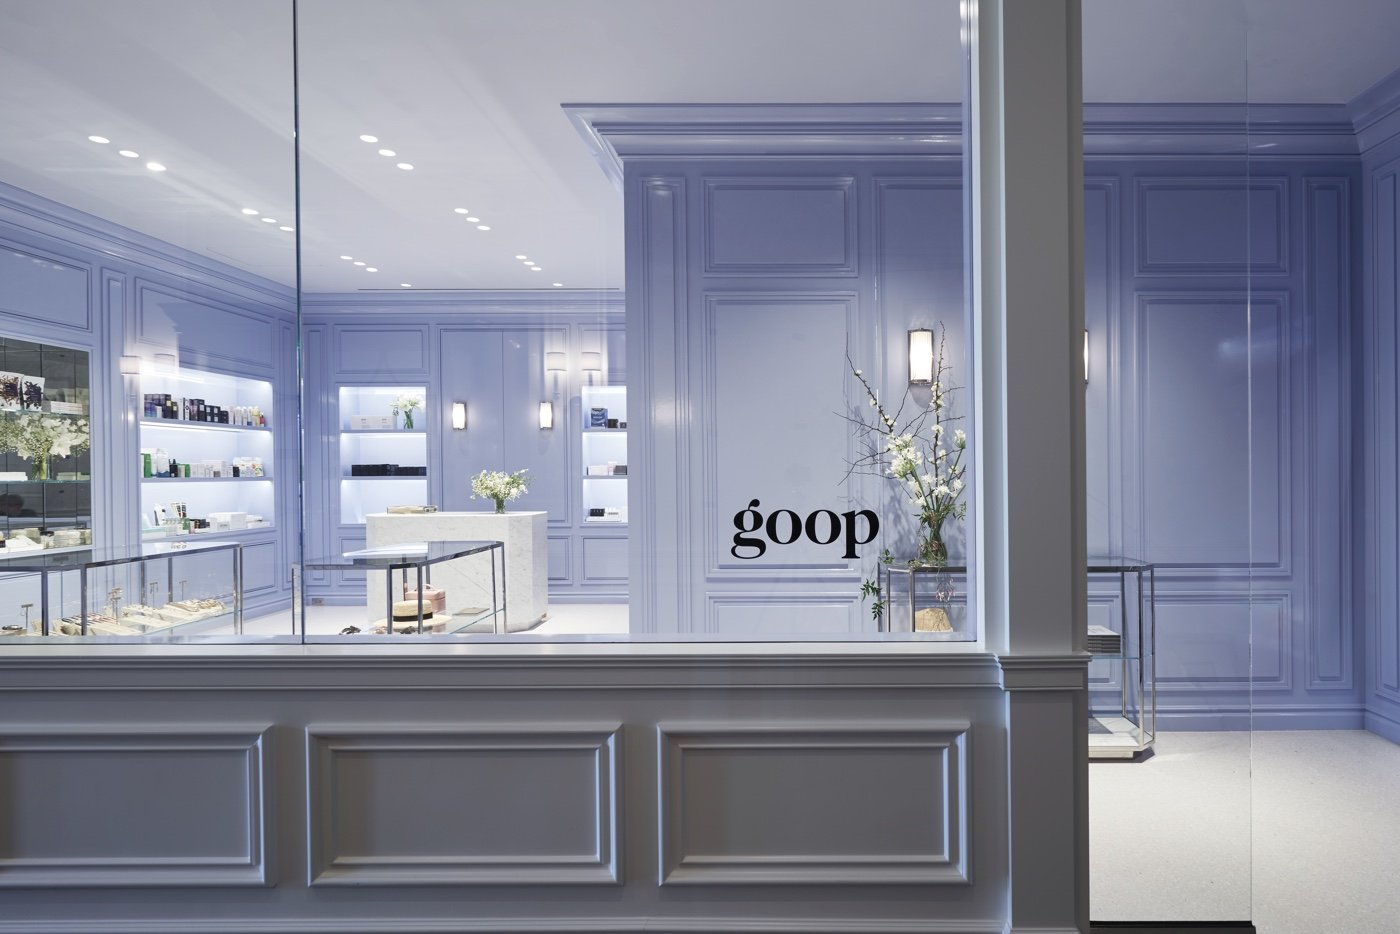 goop-outside-window-bg